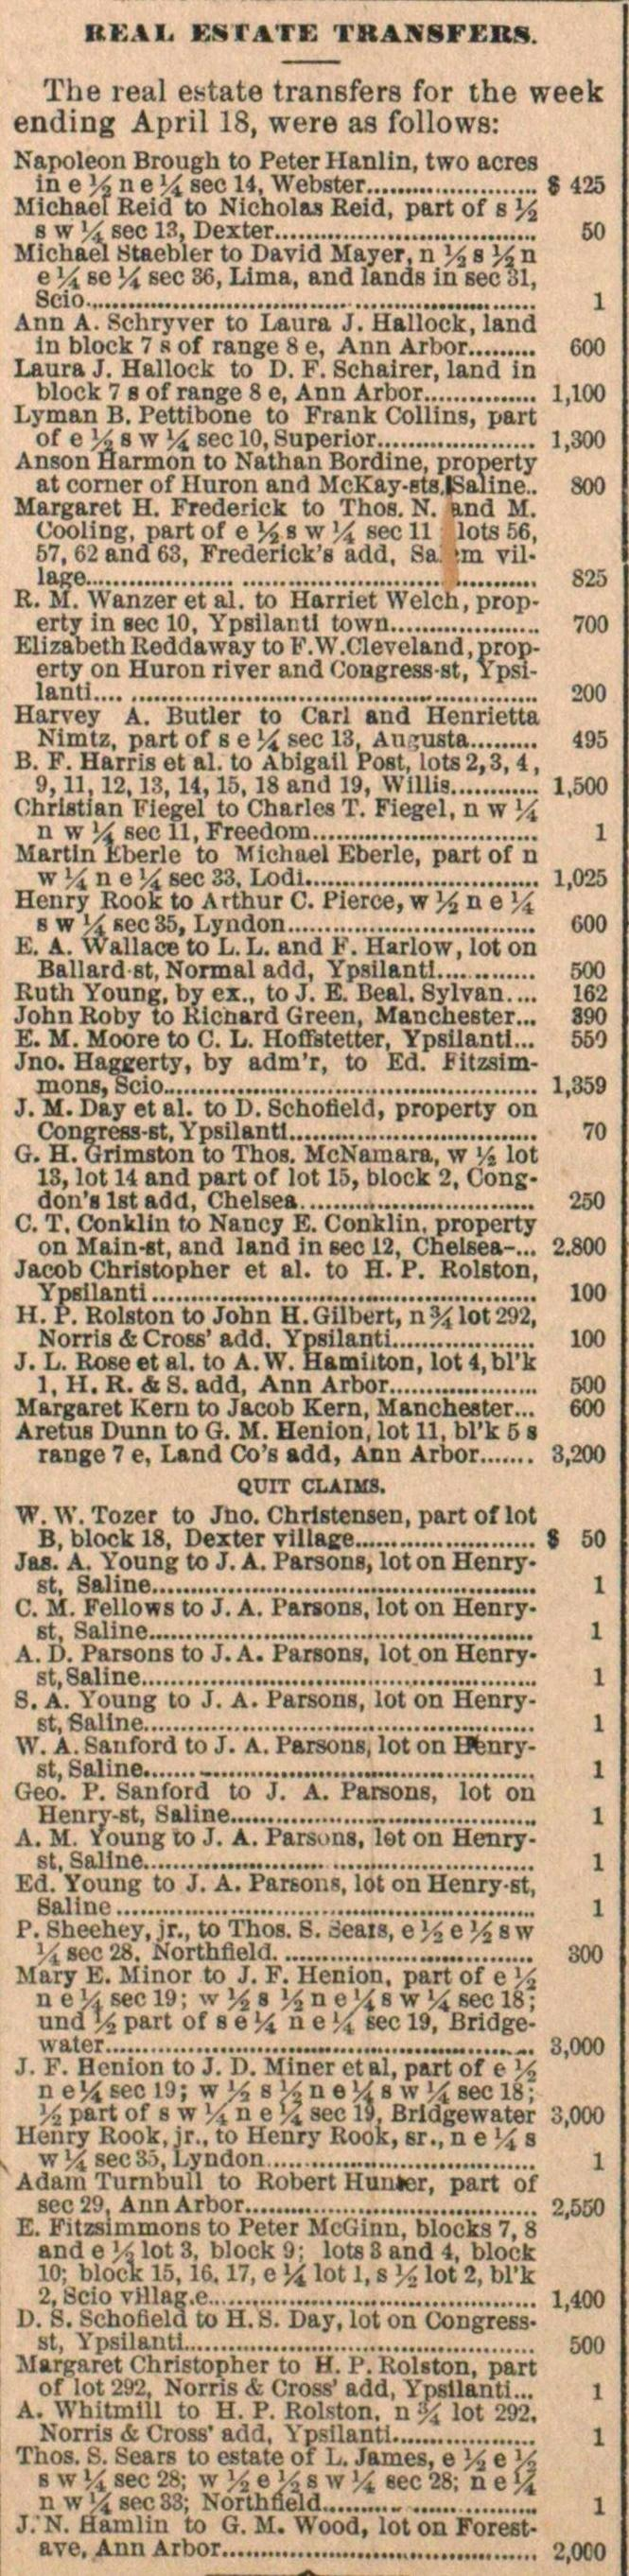 Real Estate Transfers. image